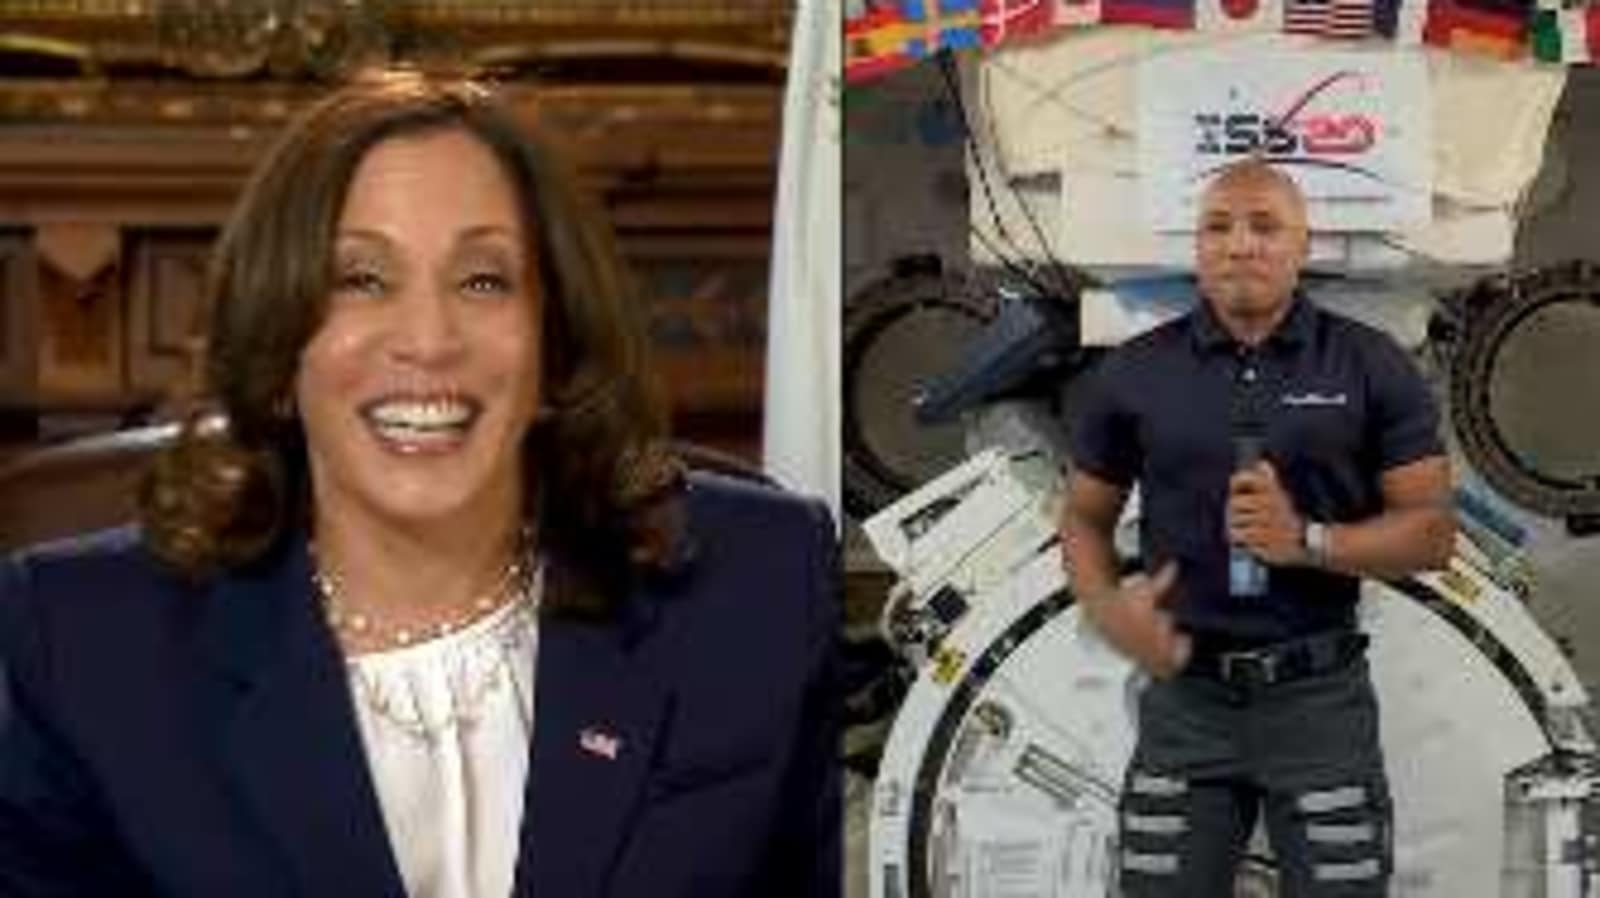 US VP Kamala Harris calls astronaut Victor Glover at ISS. NASA shares video - Hindustan Times